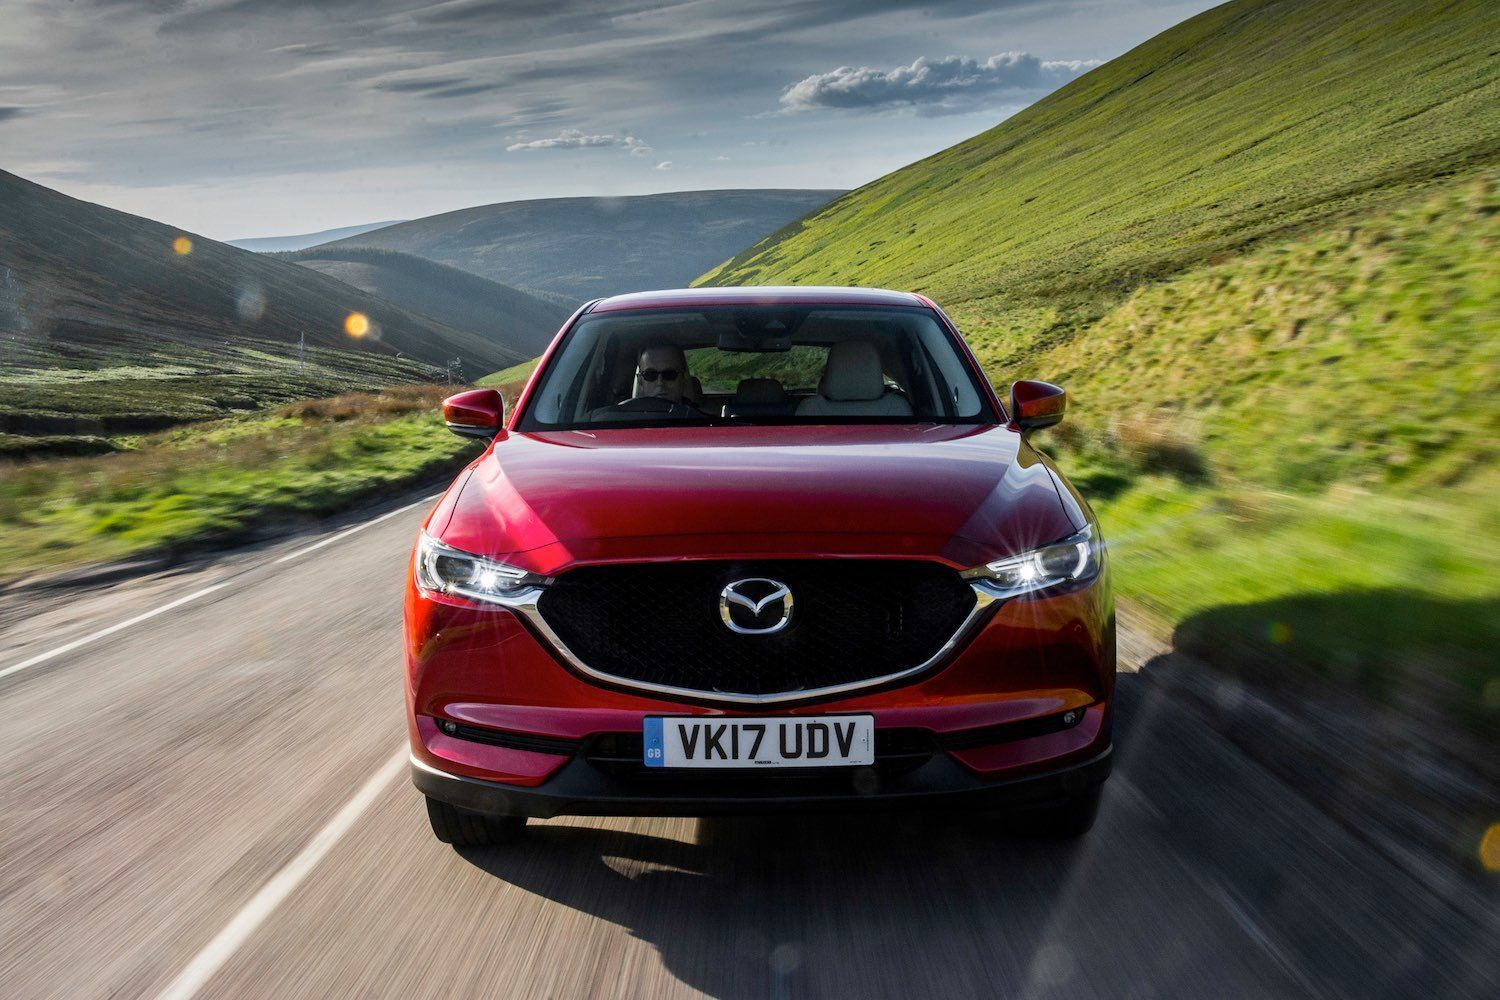 Tom Scanlan reviews the all new Mazda CX-5 in the Cairngorms Scotland for drive 18